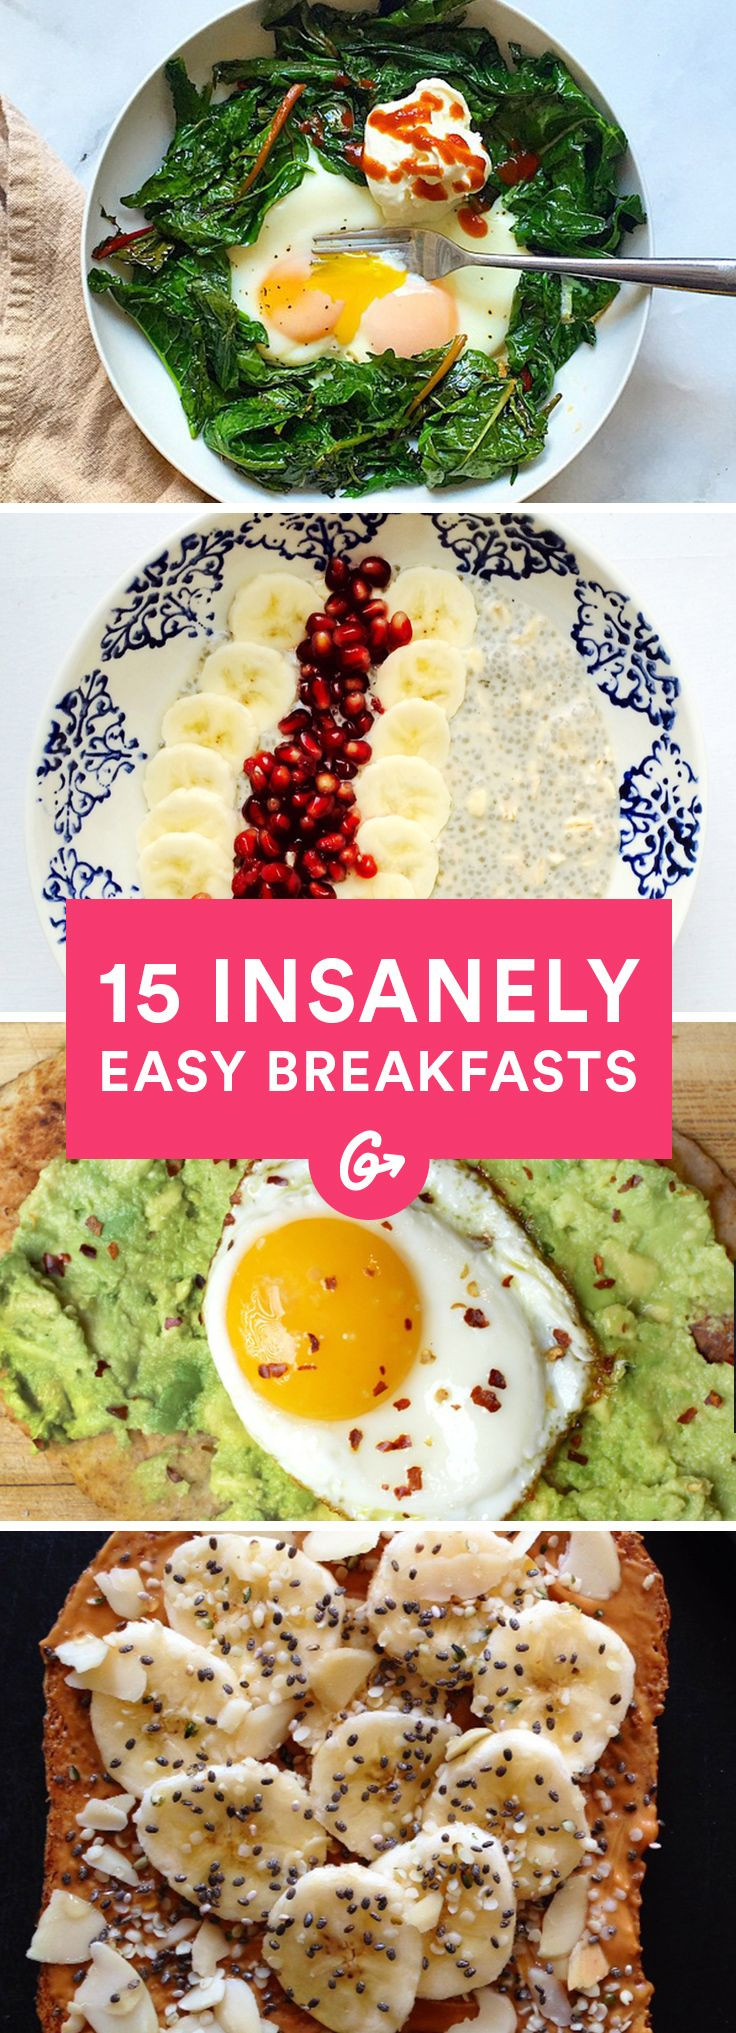 Healthy Breakfast Eating Out  The 25 best Healthy breakfasts ideas on Pinterest